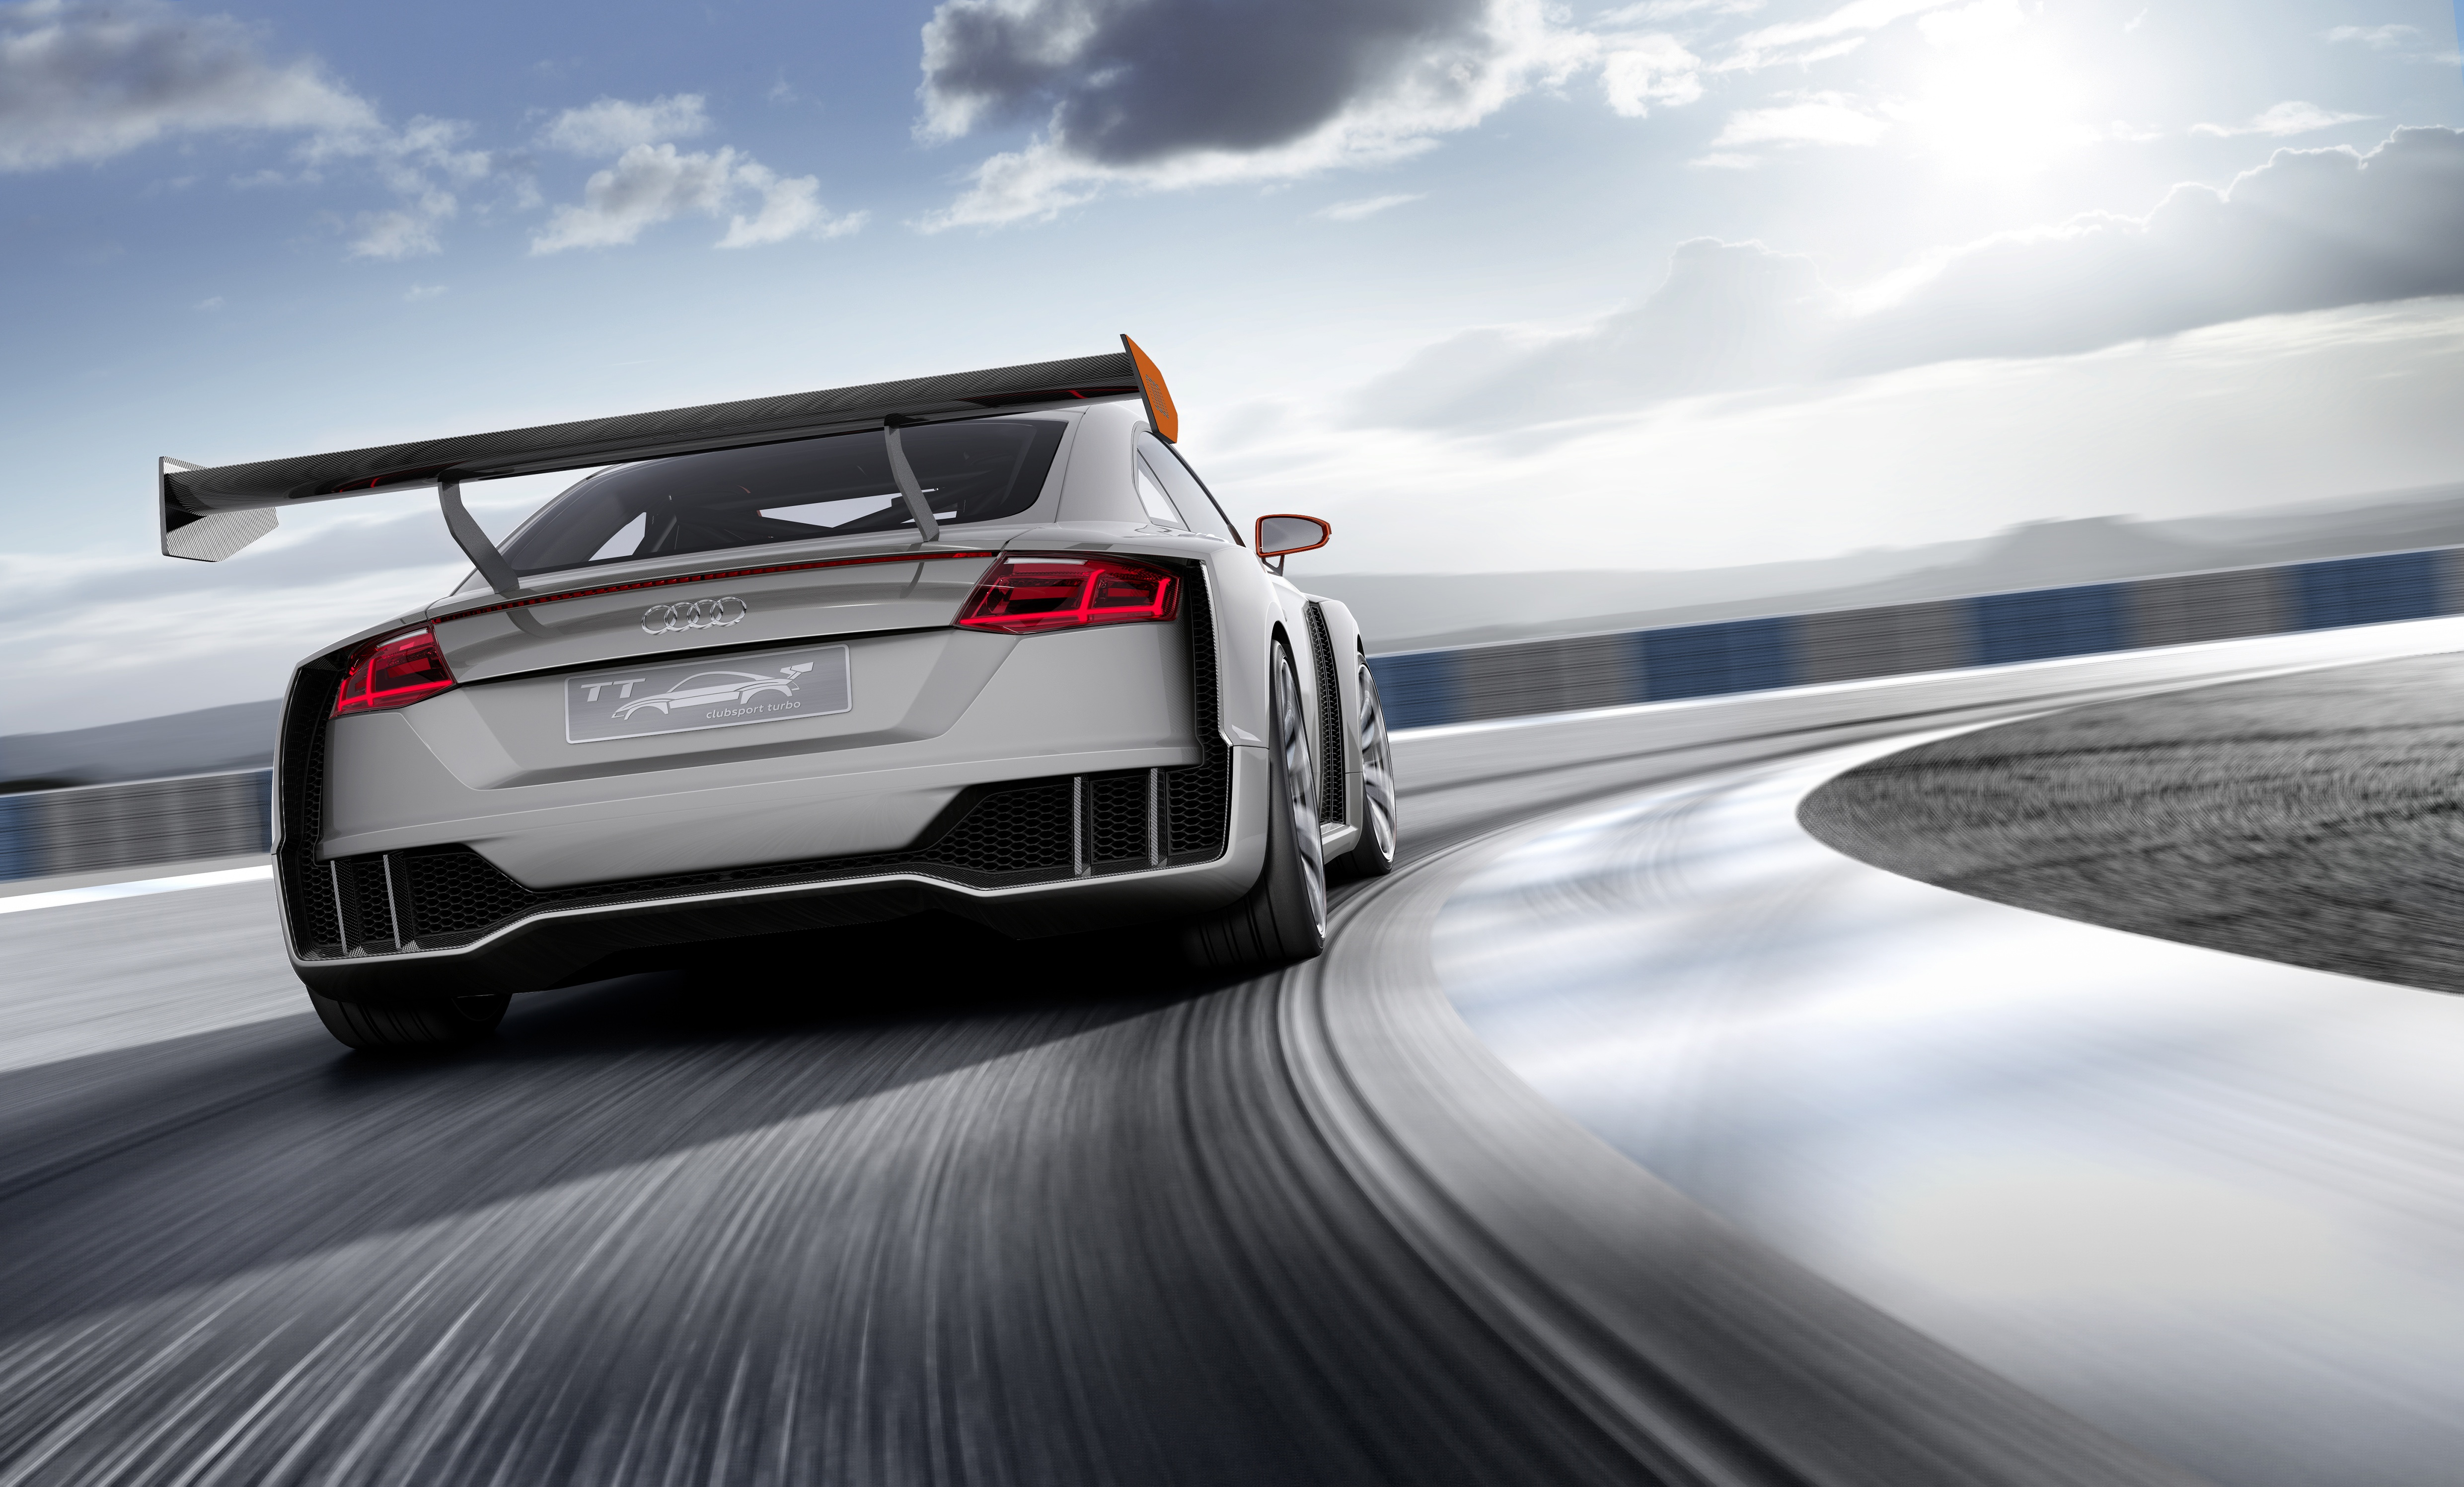 Audi TT clubsport turbo concept engine specs and performance